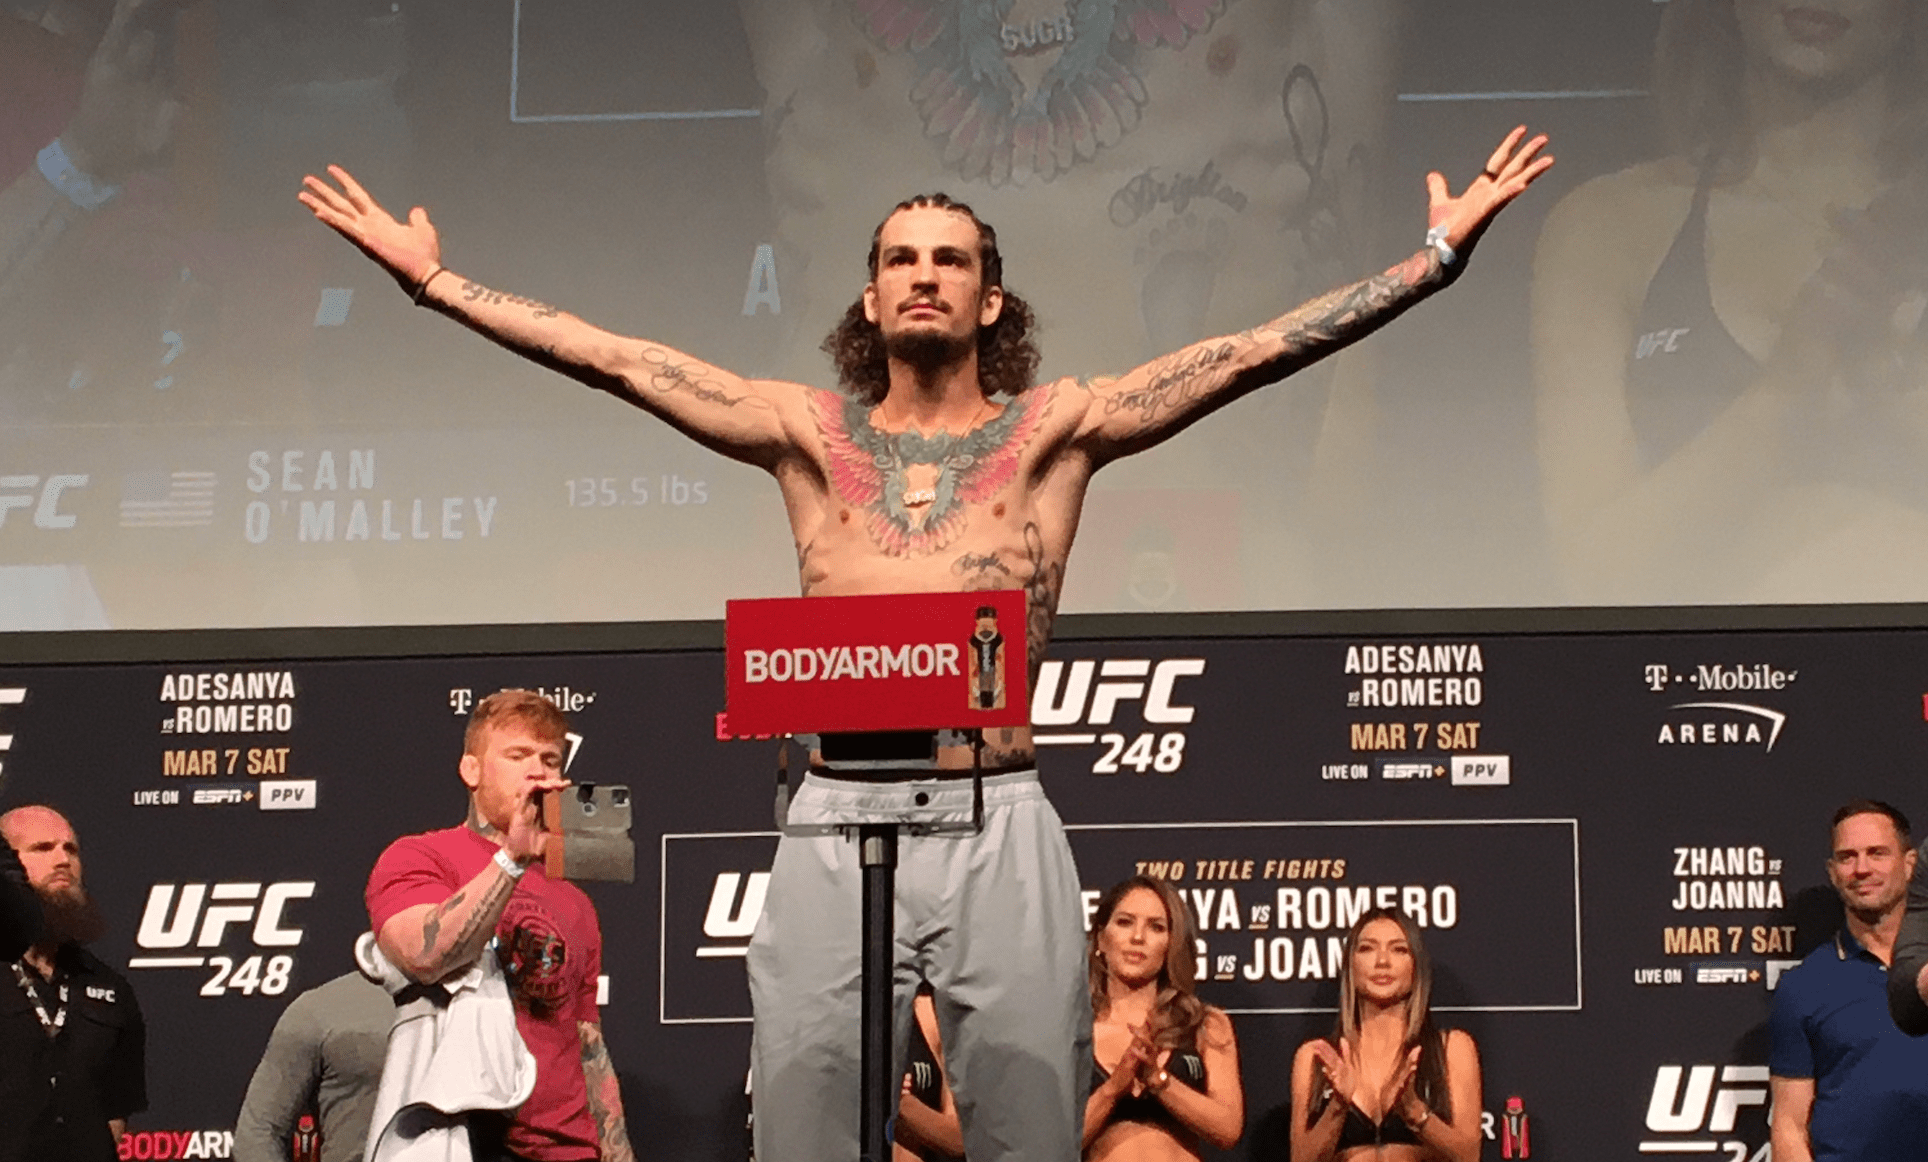 Sean O'Malley Dissects Marlon Vera Ahead Of UFC 252: He's Pretty Basic